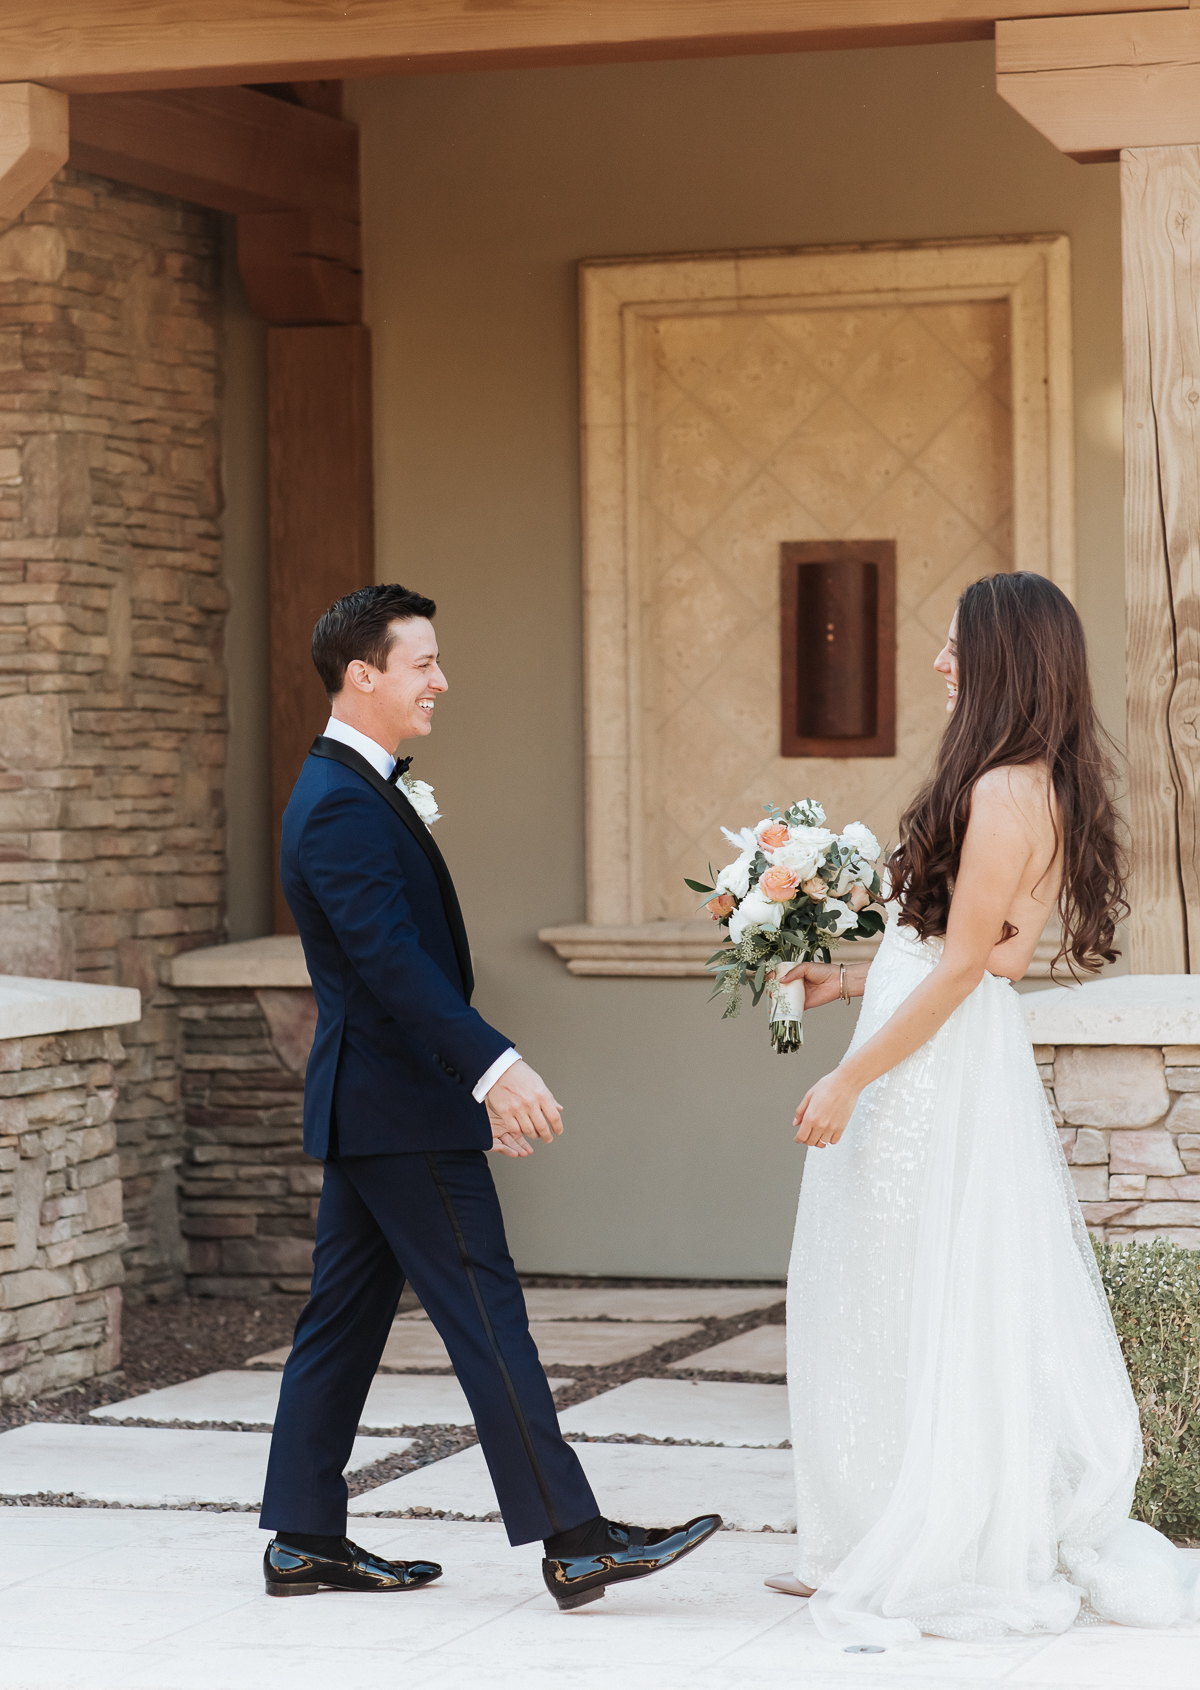 Megan Claire Photography | Arizona Wedding Photographer.  Elegant Scottsdale Backyard Wedding. First Look